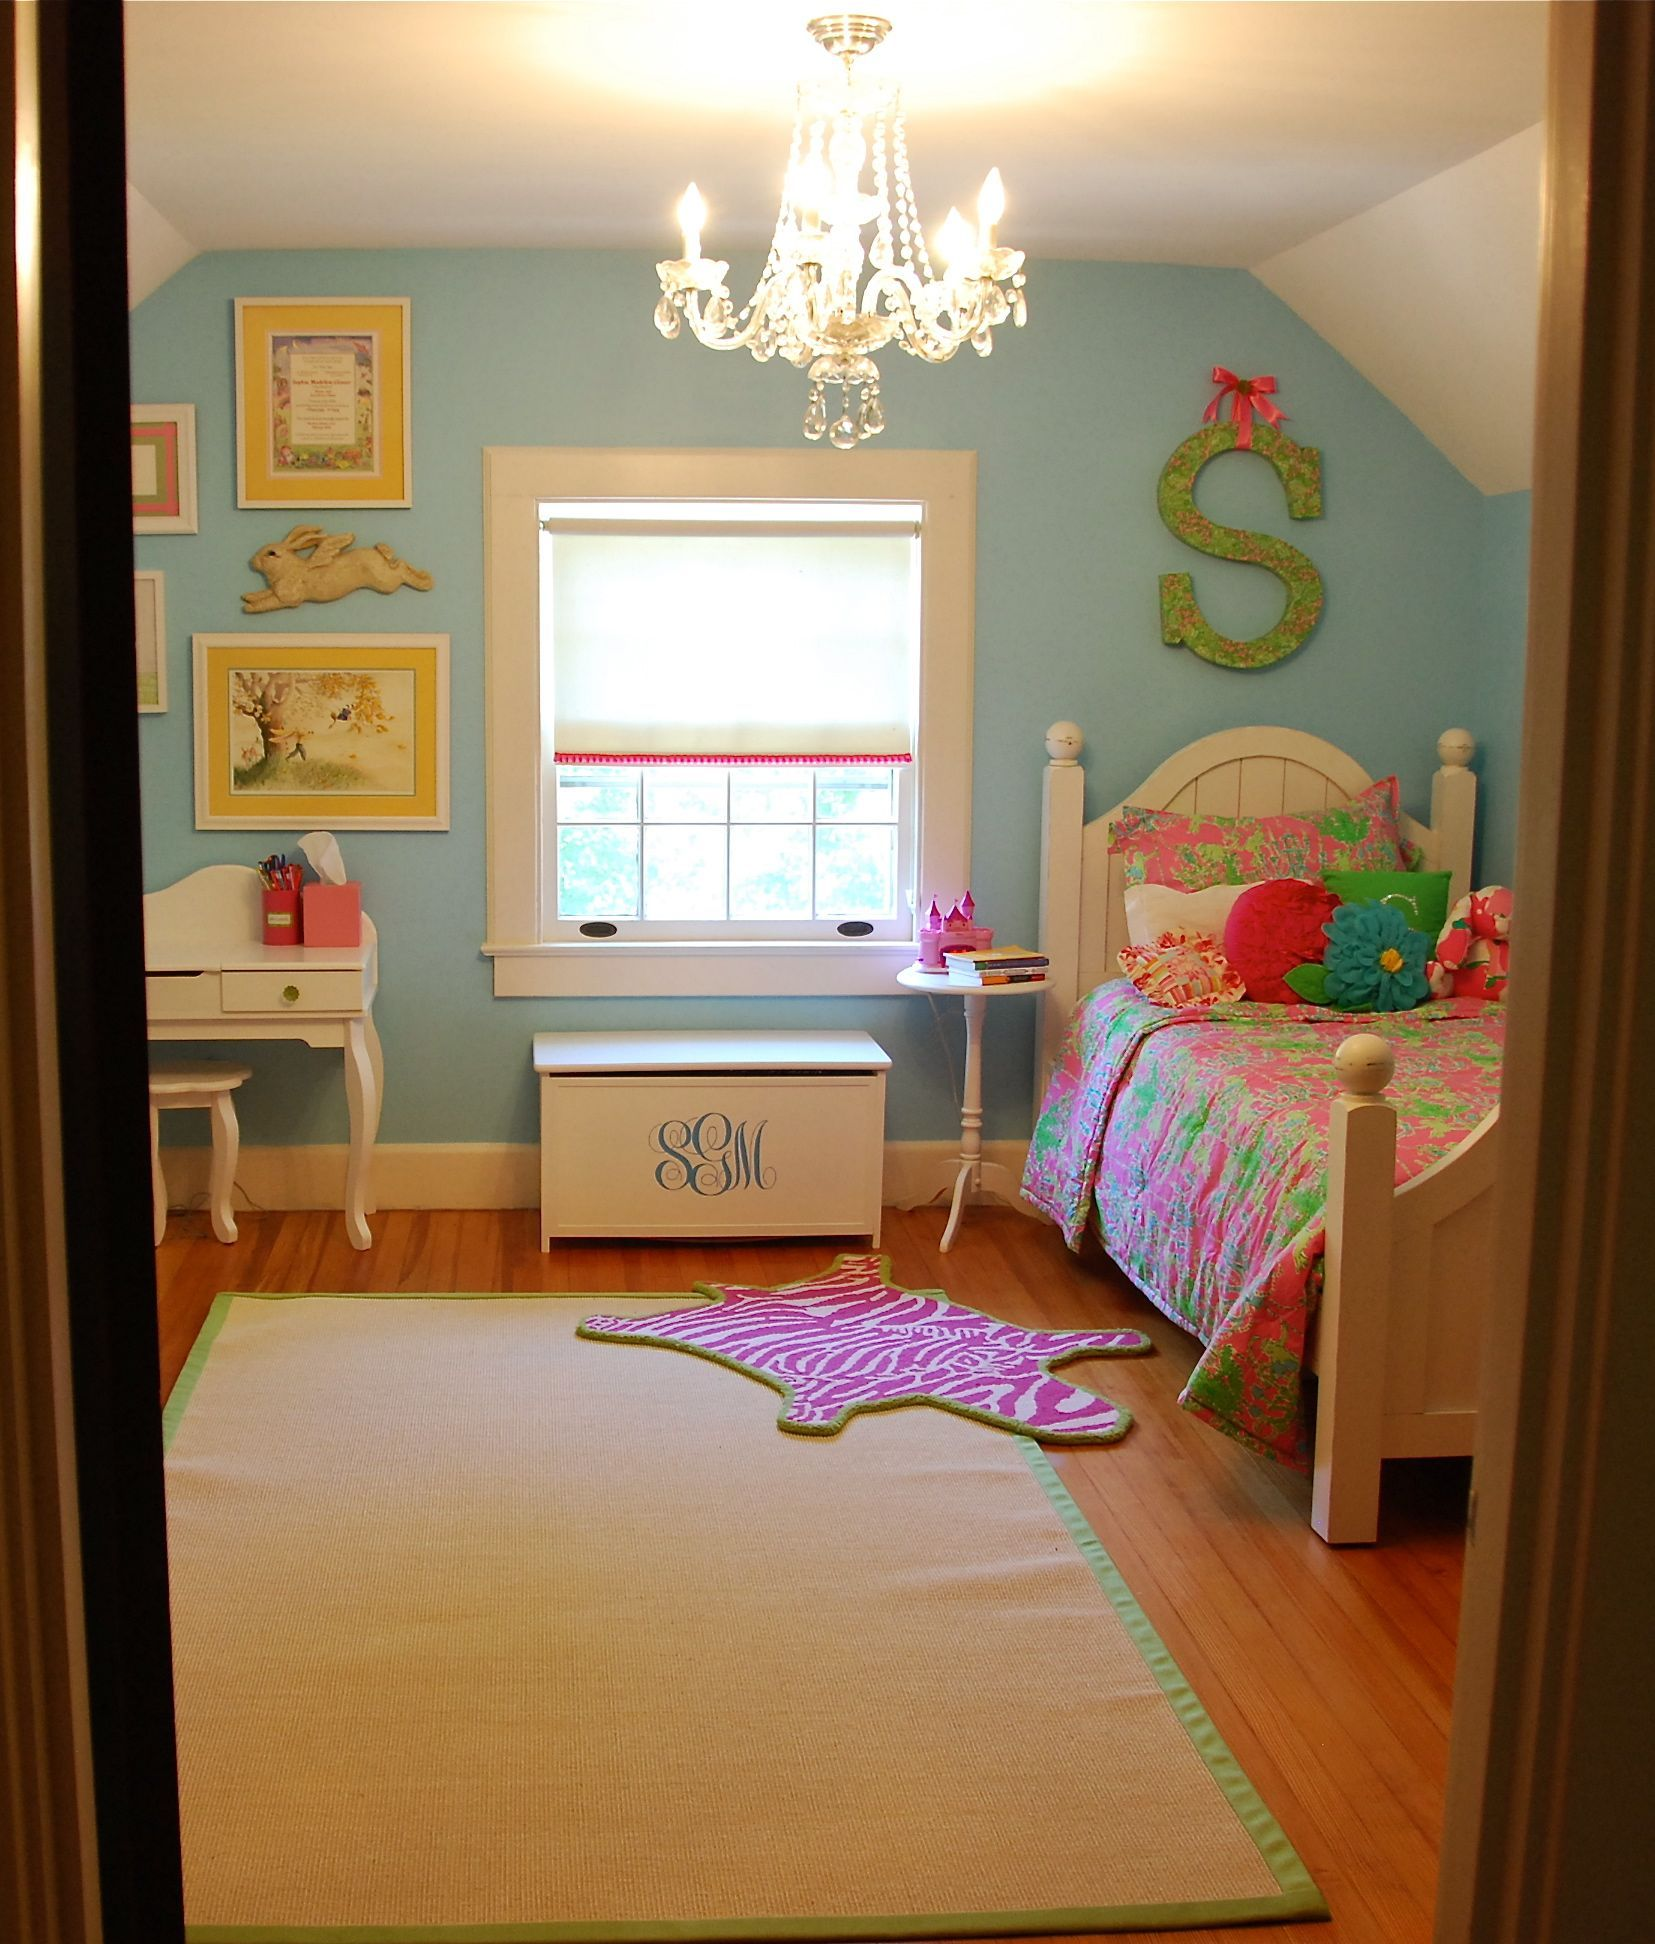 Room decorating before and after makeovers aqua rooms toy boxes and monograms - Year old girl bedroom ideas ...